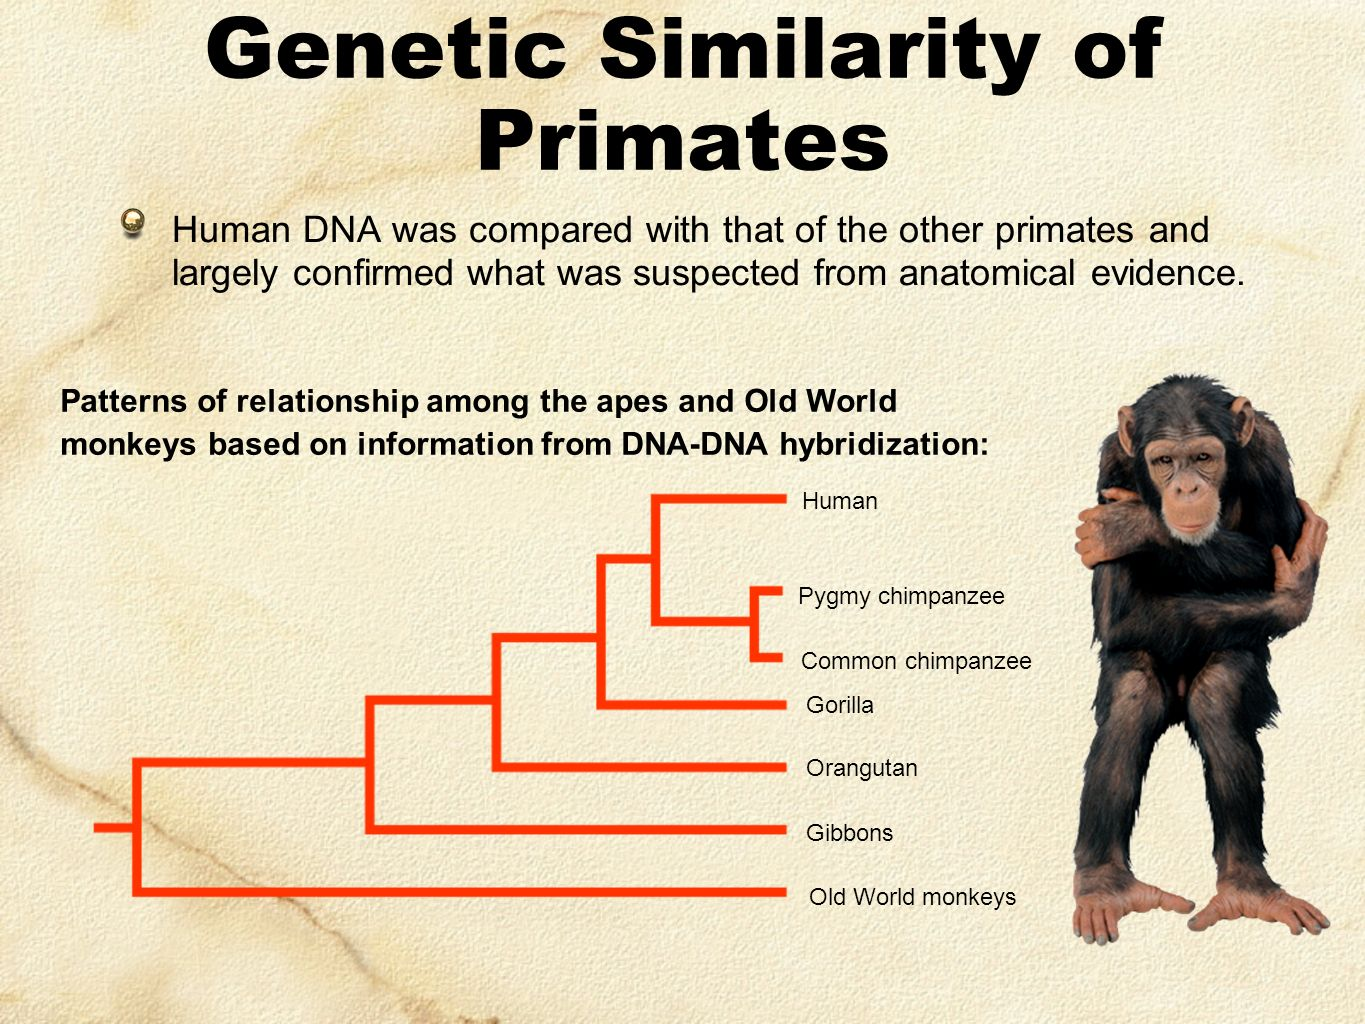 similarities in human and nonhuman primates Best answer: the non human primates, esp the chimps have their genes closely related to human primates for the physical similarities, their dental formula is similar to ours, the skeletal structural is similar as well, their faces have many muscles to specifically convey an.